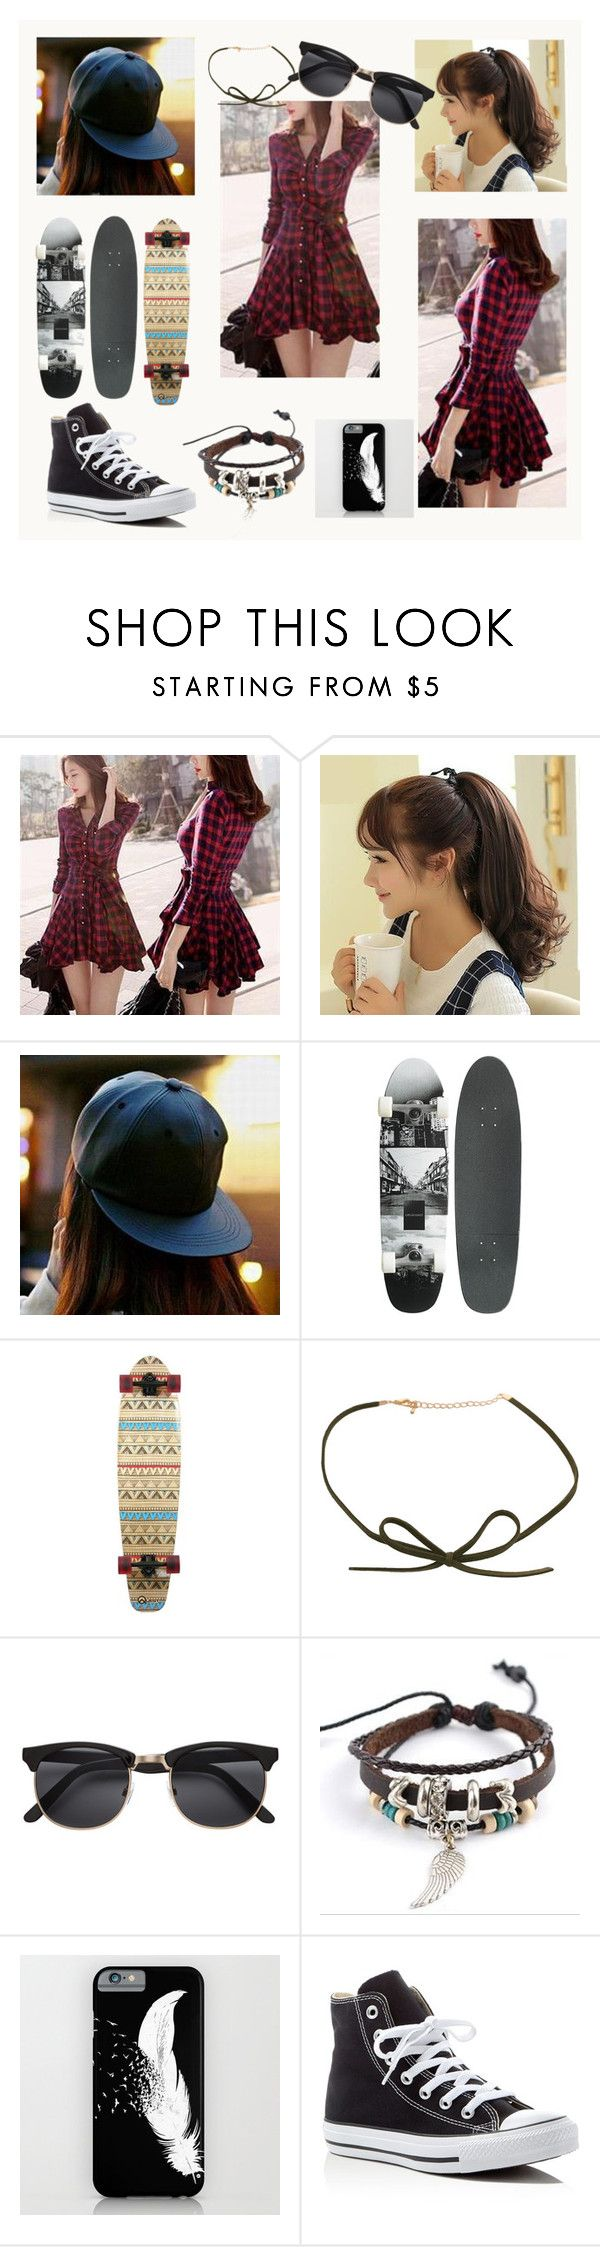 """""""Skater Girl"""" by lucykeys ❤ liked on Polyvore featuring Mayfair, Hats 'n' Tales, Trend Cool, Converse, converse, shirtdress, cap, skate and choker"""